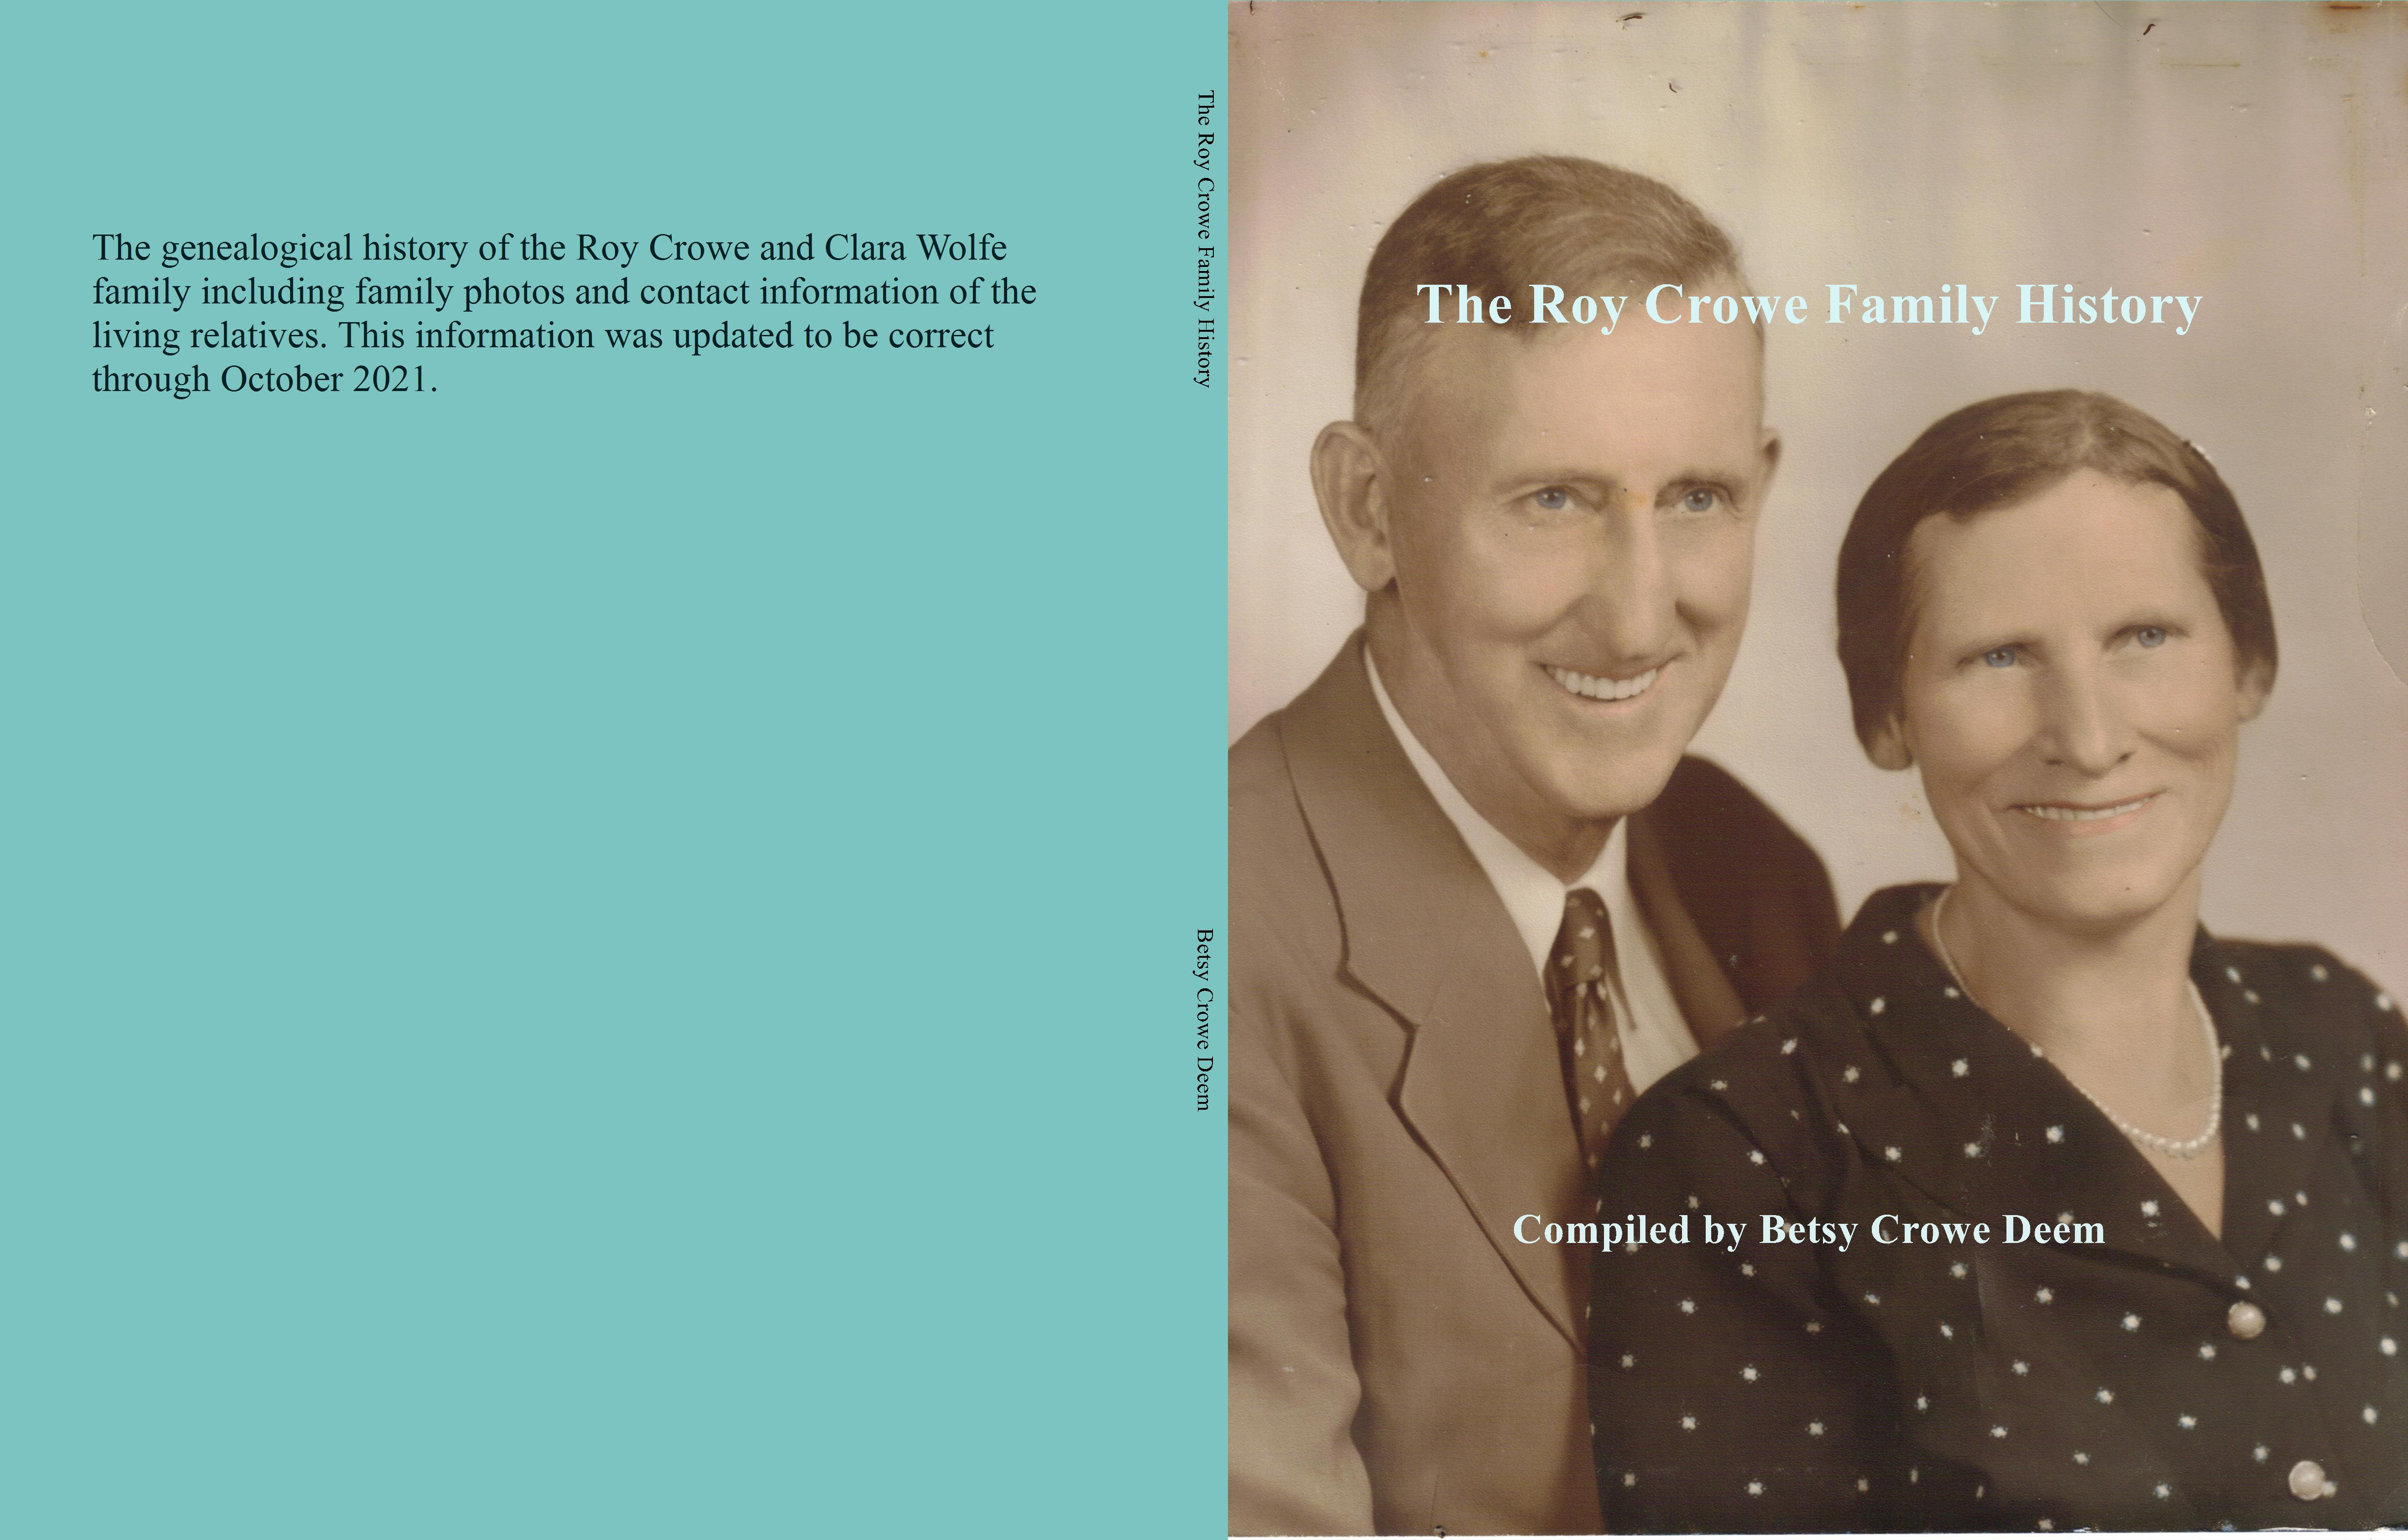 The Roy Crowe Family History cover image